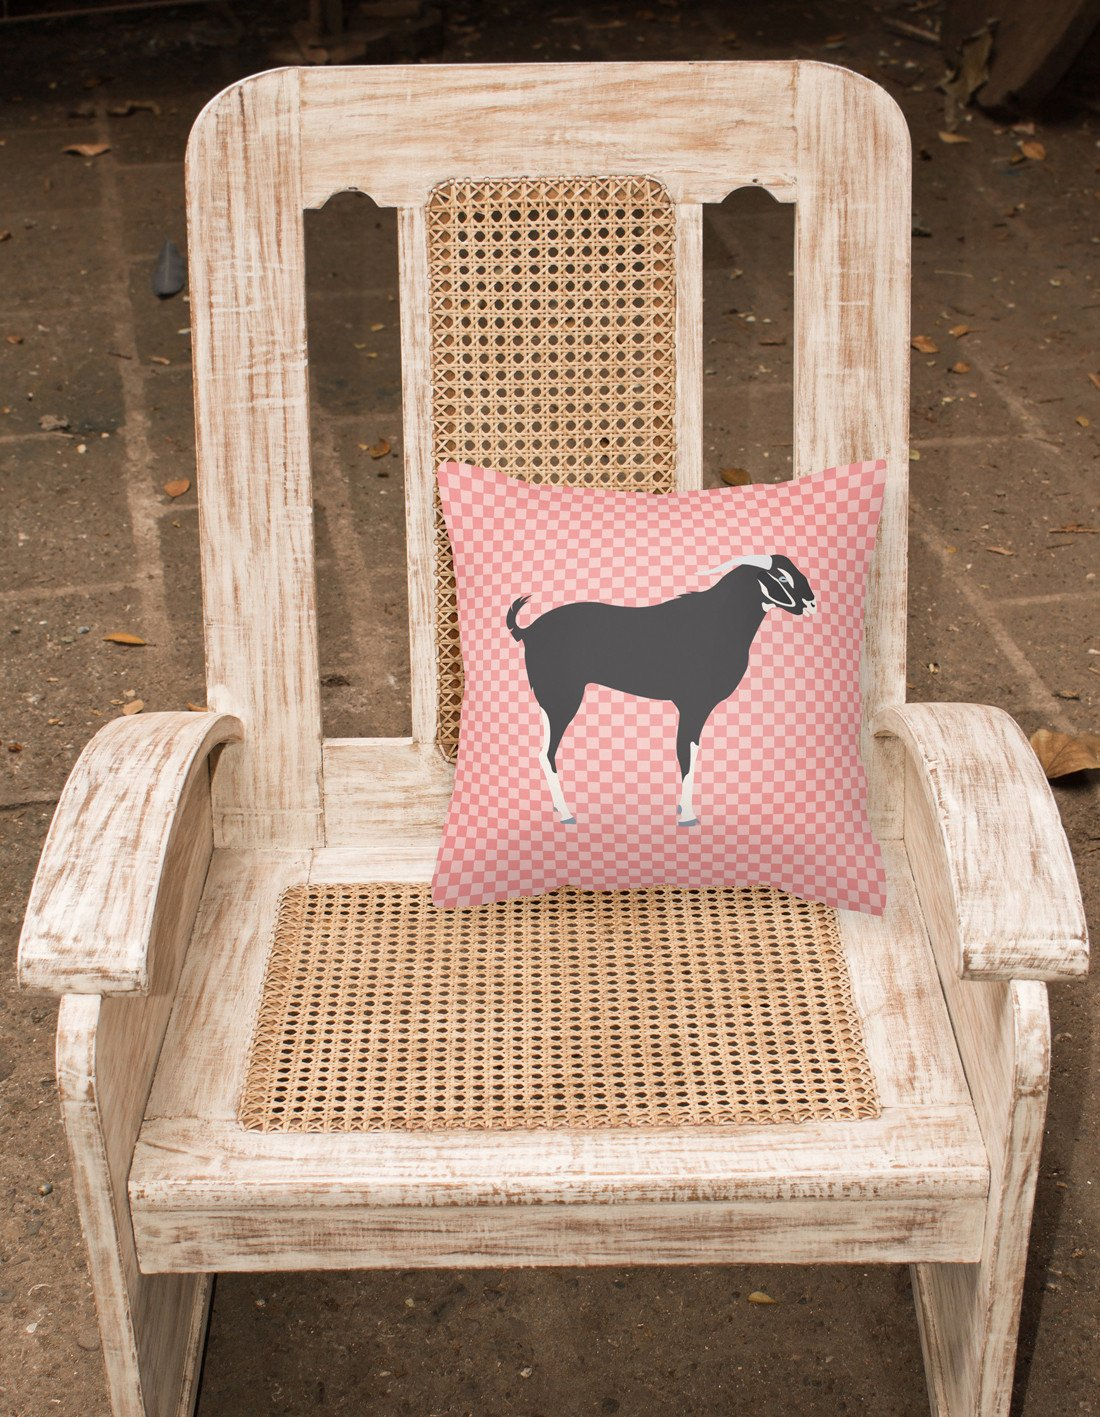 Black Bengal Goat Pink Check Fabric Decorative Pillow BB7884PW1818 by Caroline's Treasures